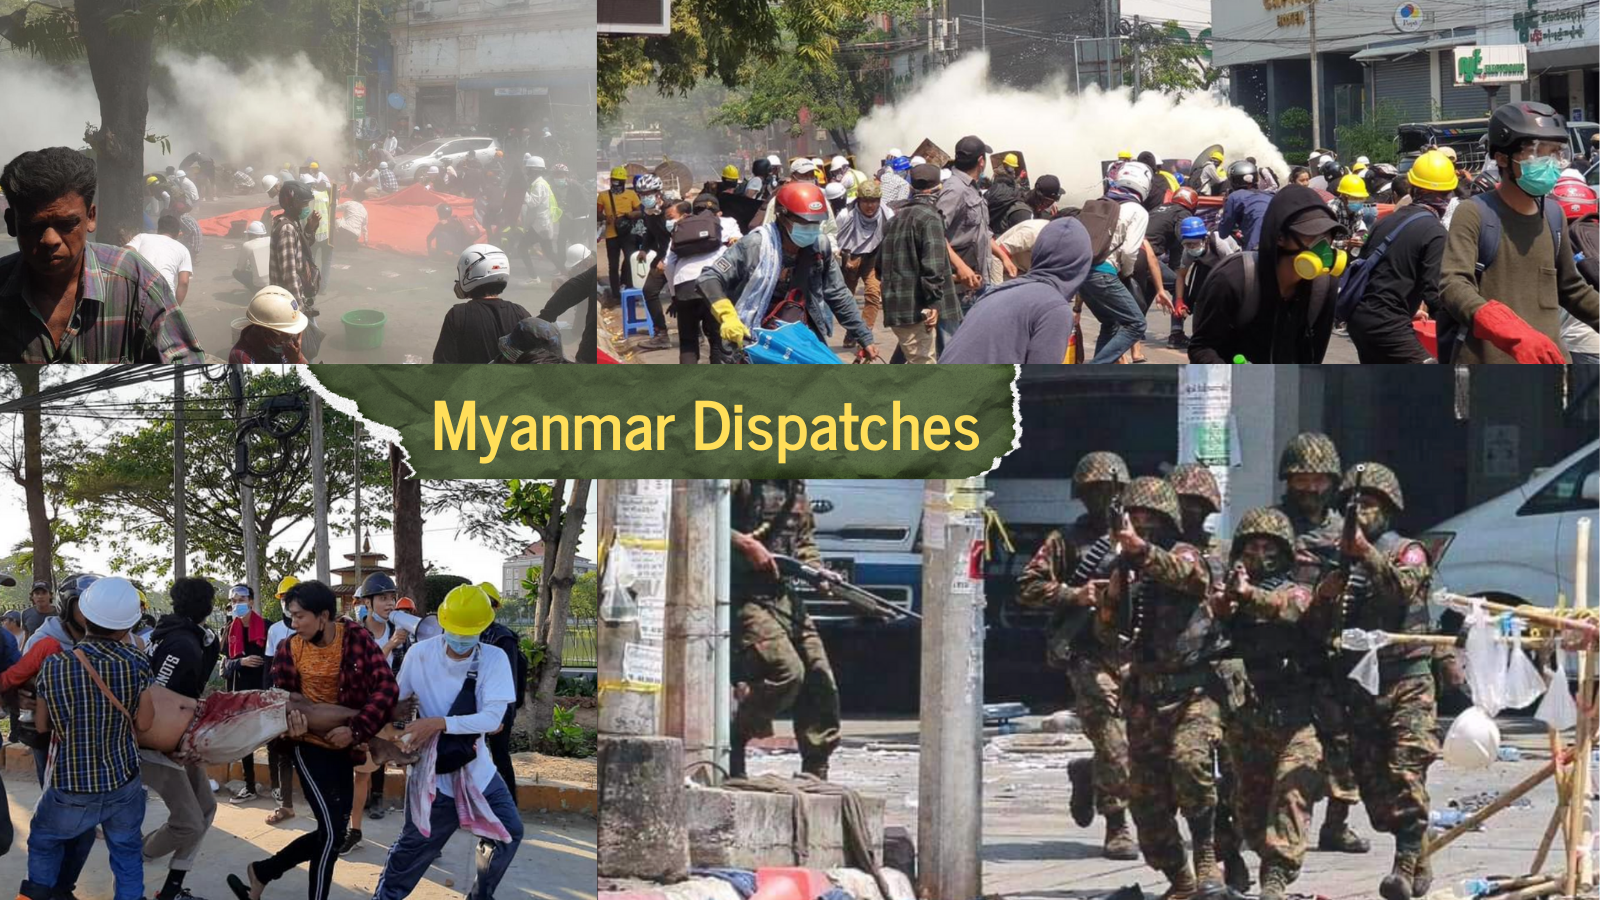 Myanmar dispatches: updates and analysis from JURIST correspondents in Myanmar